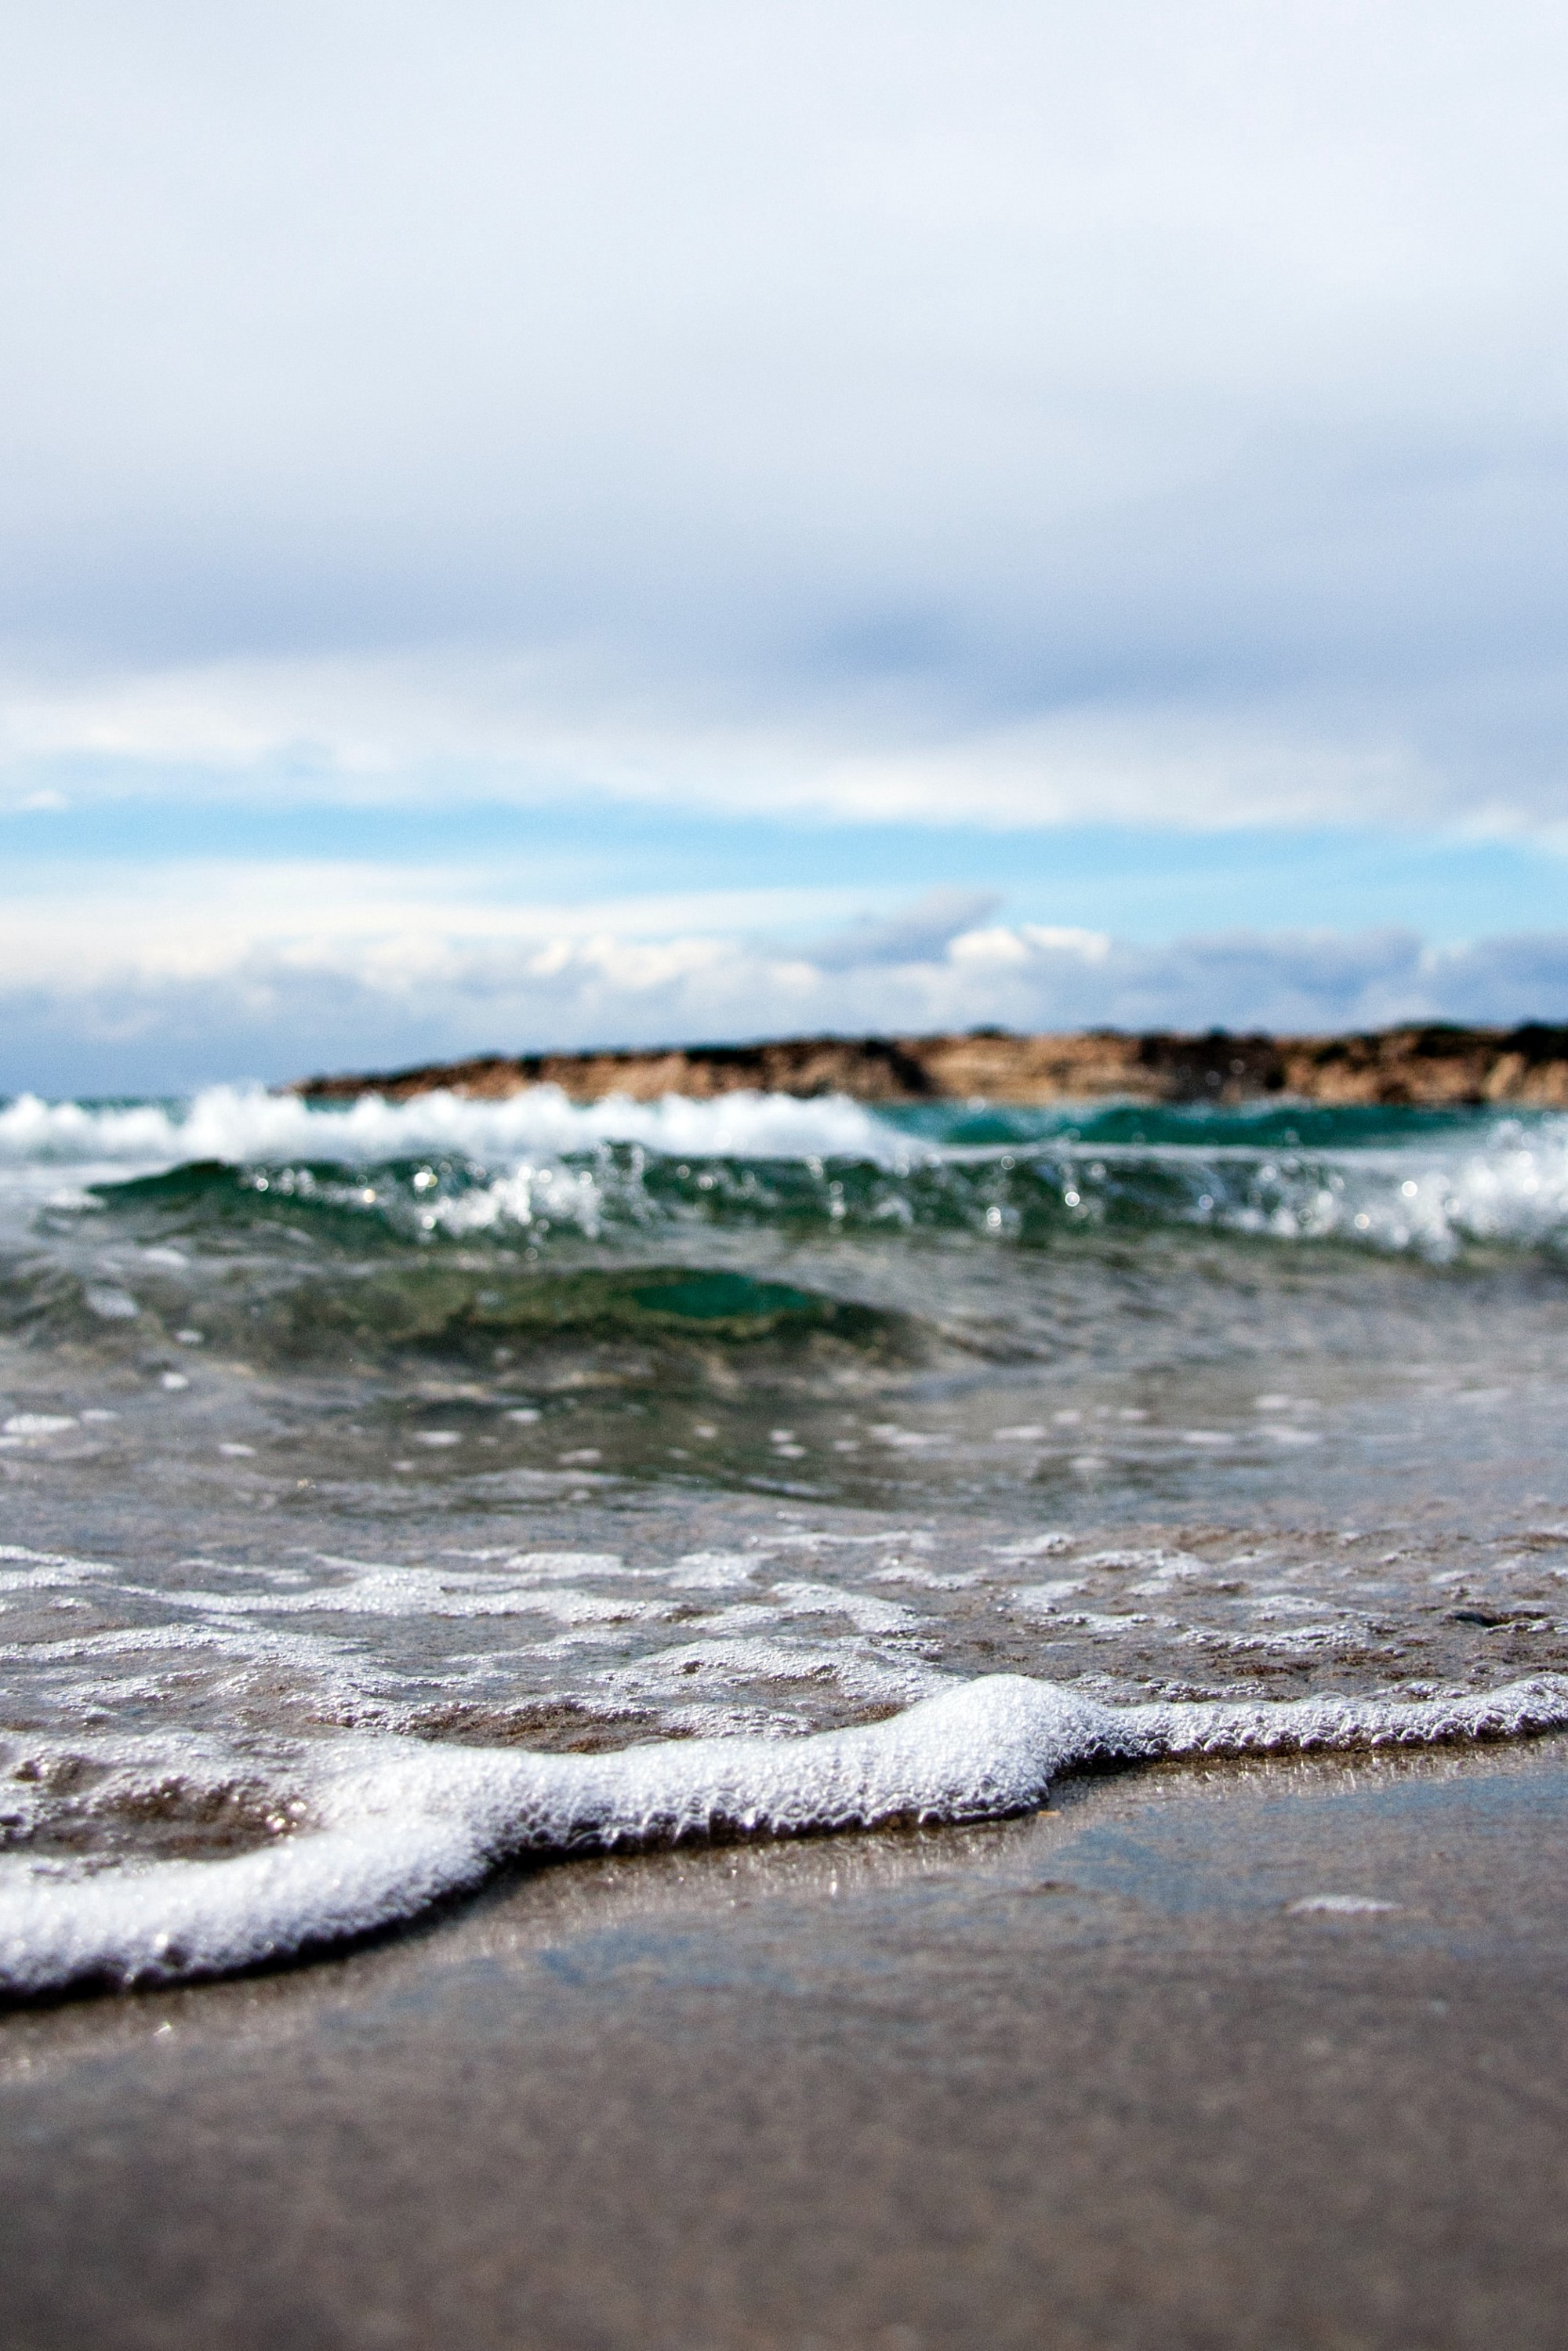 Image at ground level of the ocean coming onto the shore